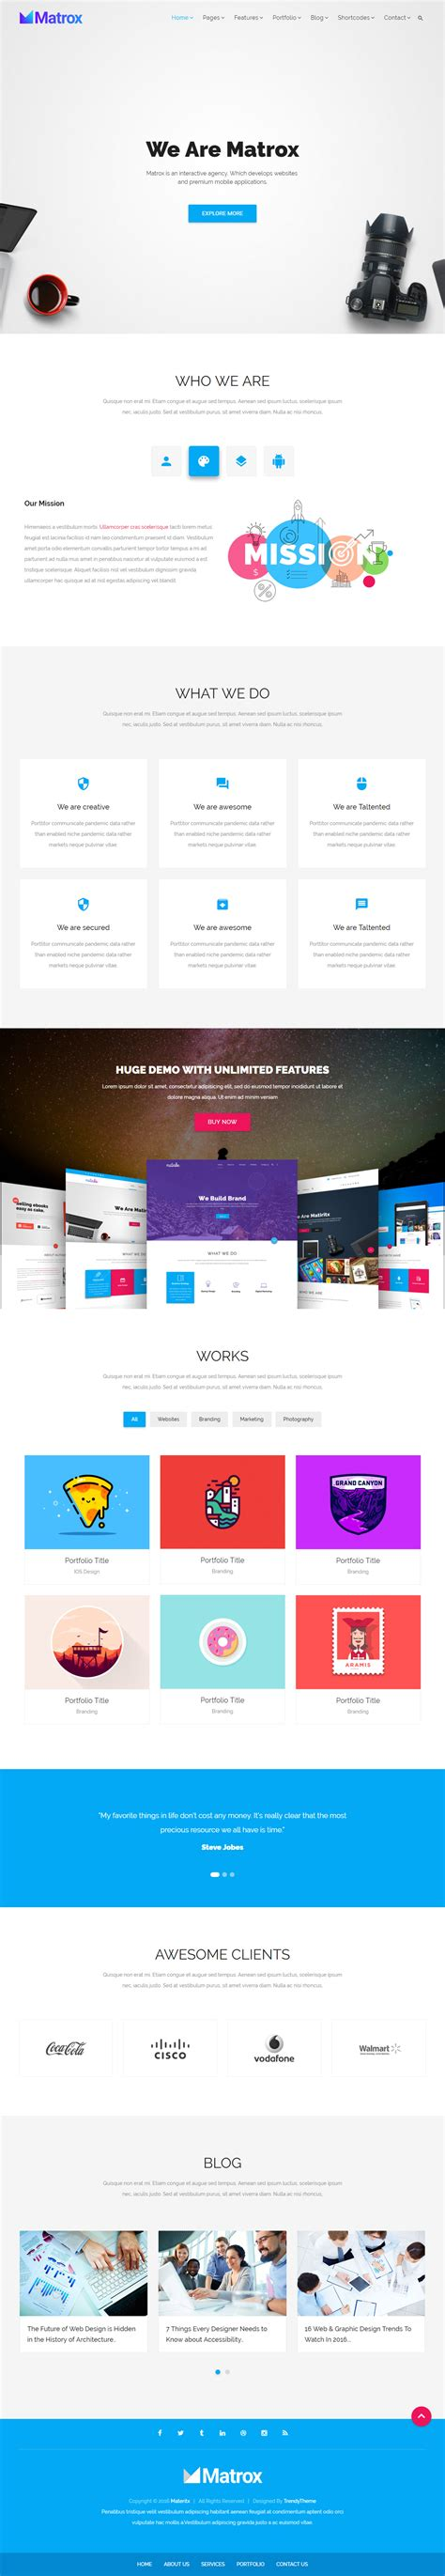 parallax scrolling template images templates design ideas